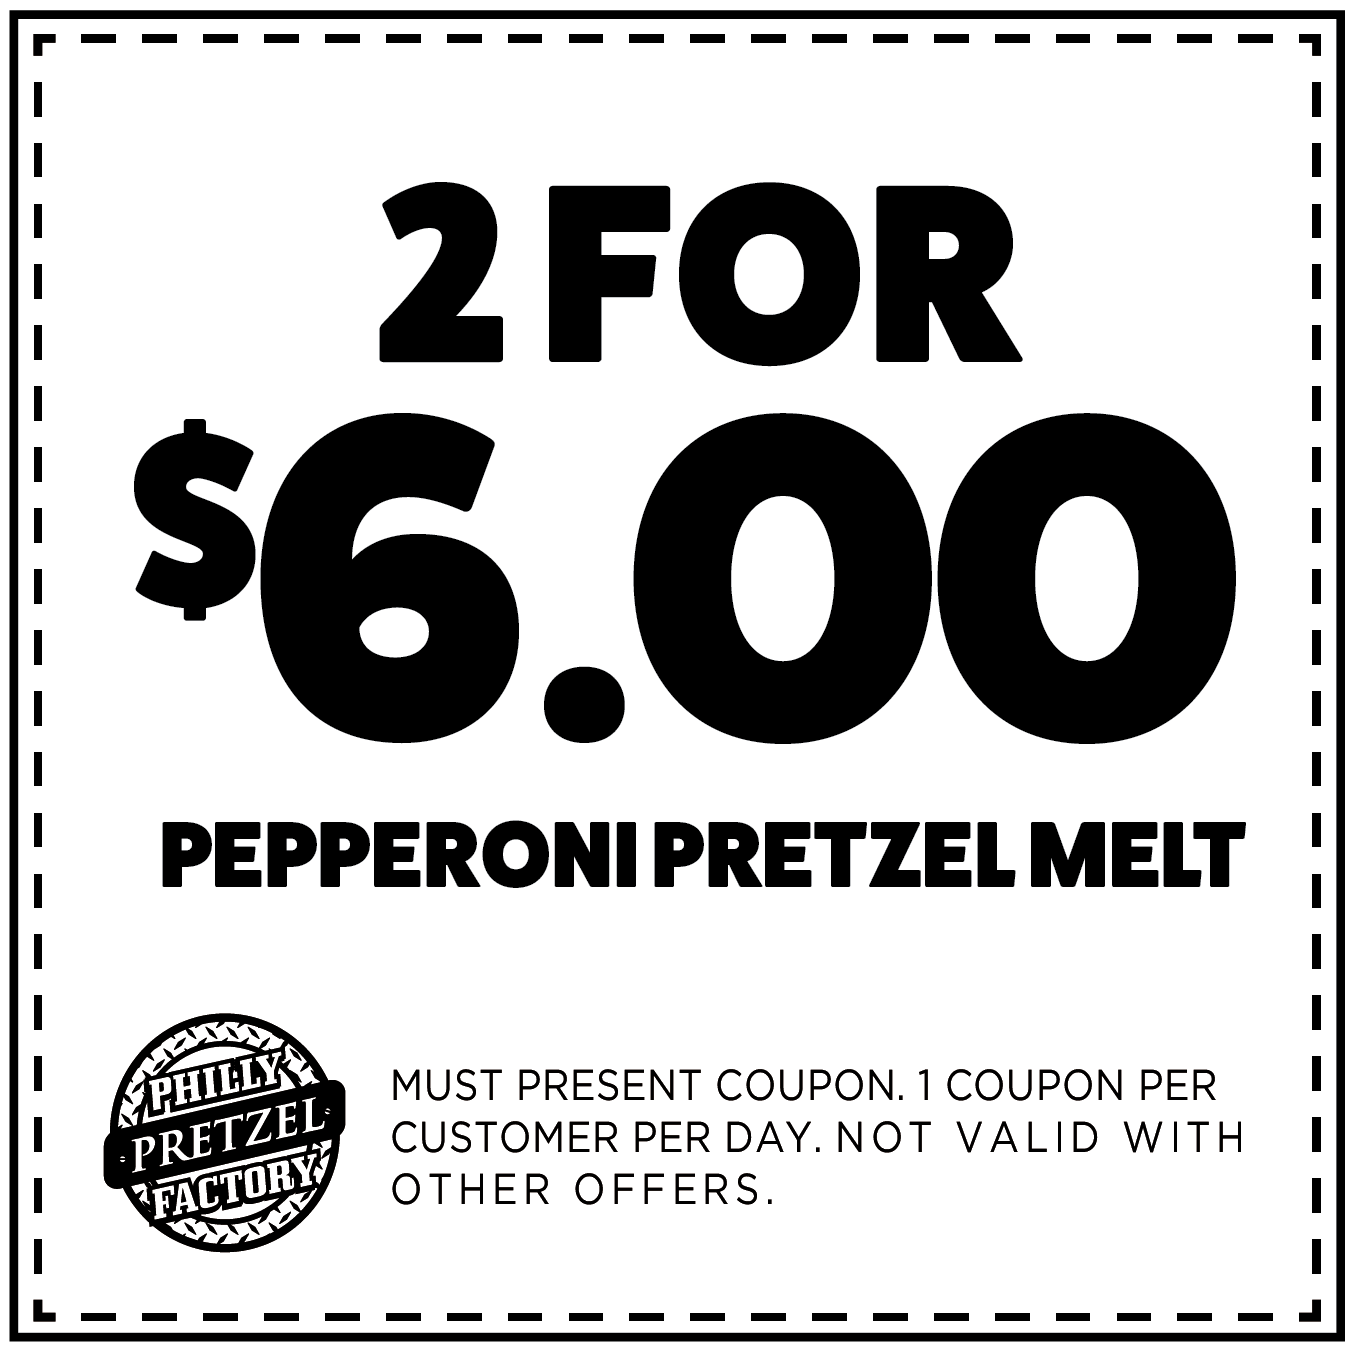 2 for $6 Pepperoni Pretzel Melt